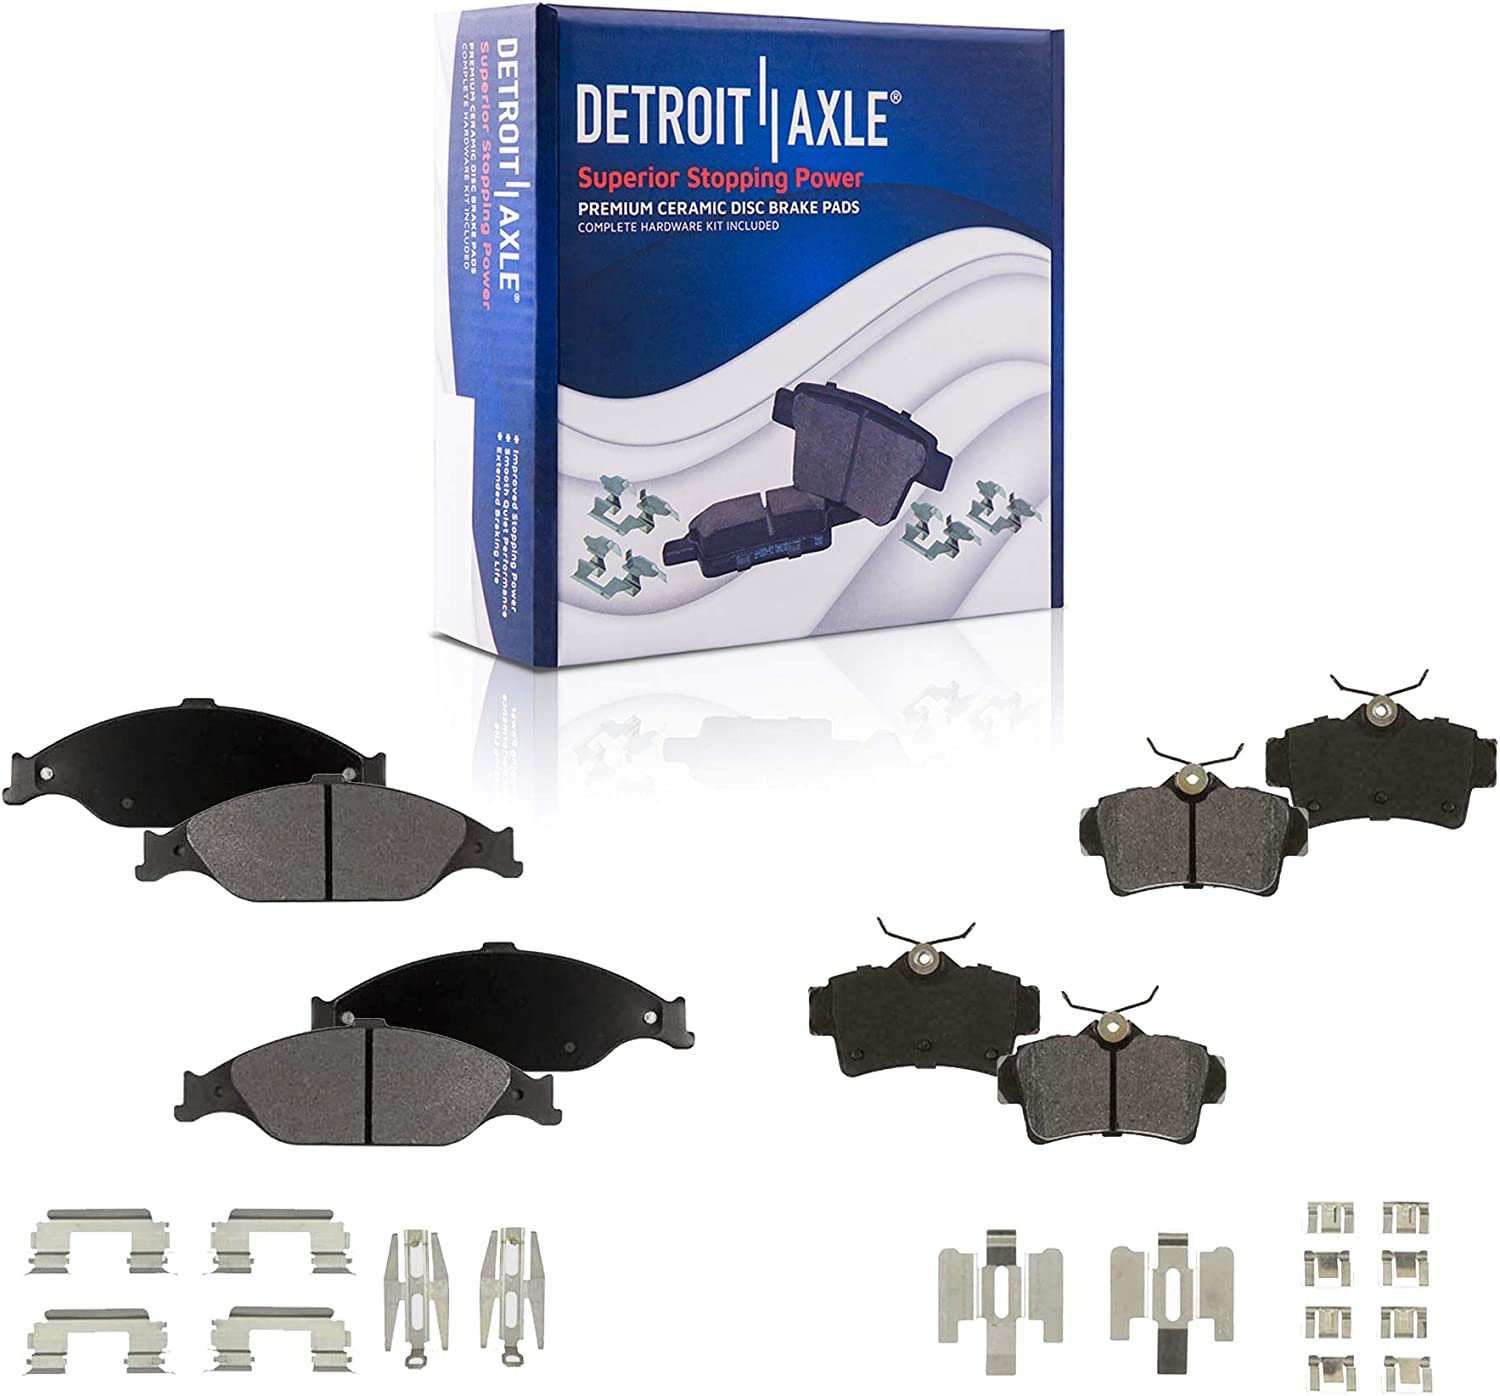 Detroit Axle Front Rear Ceramic Replacement Pads New life for 1999-2004 At the price